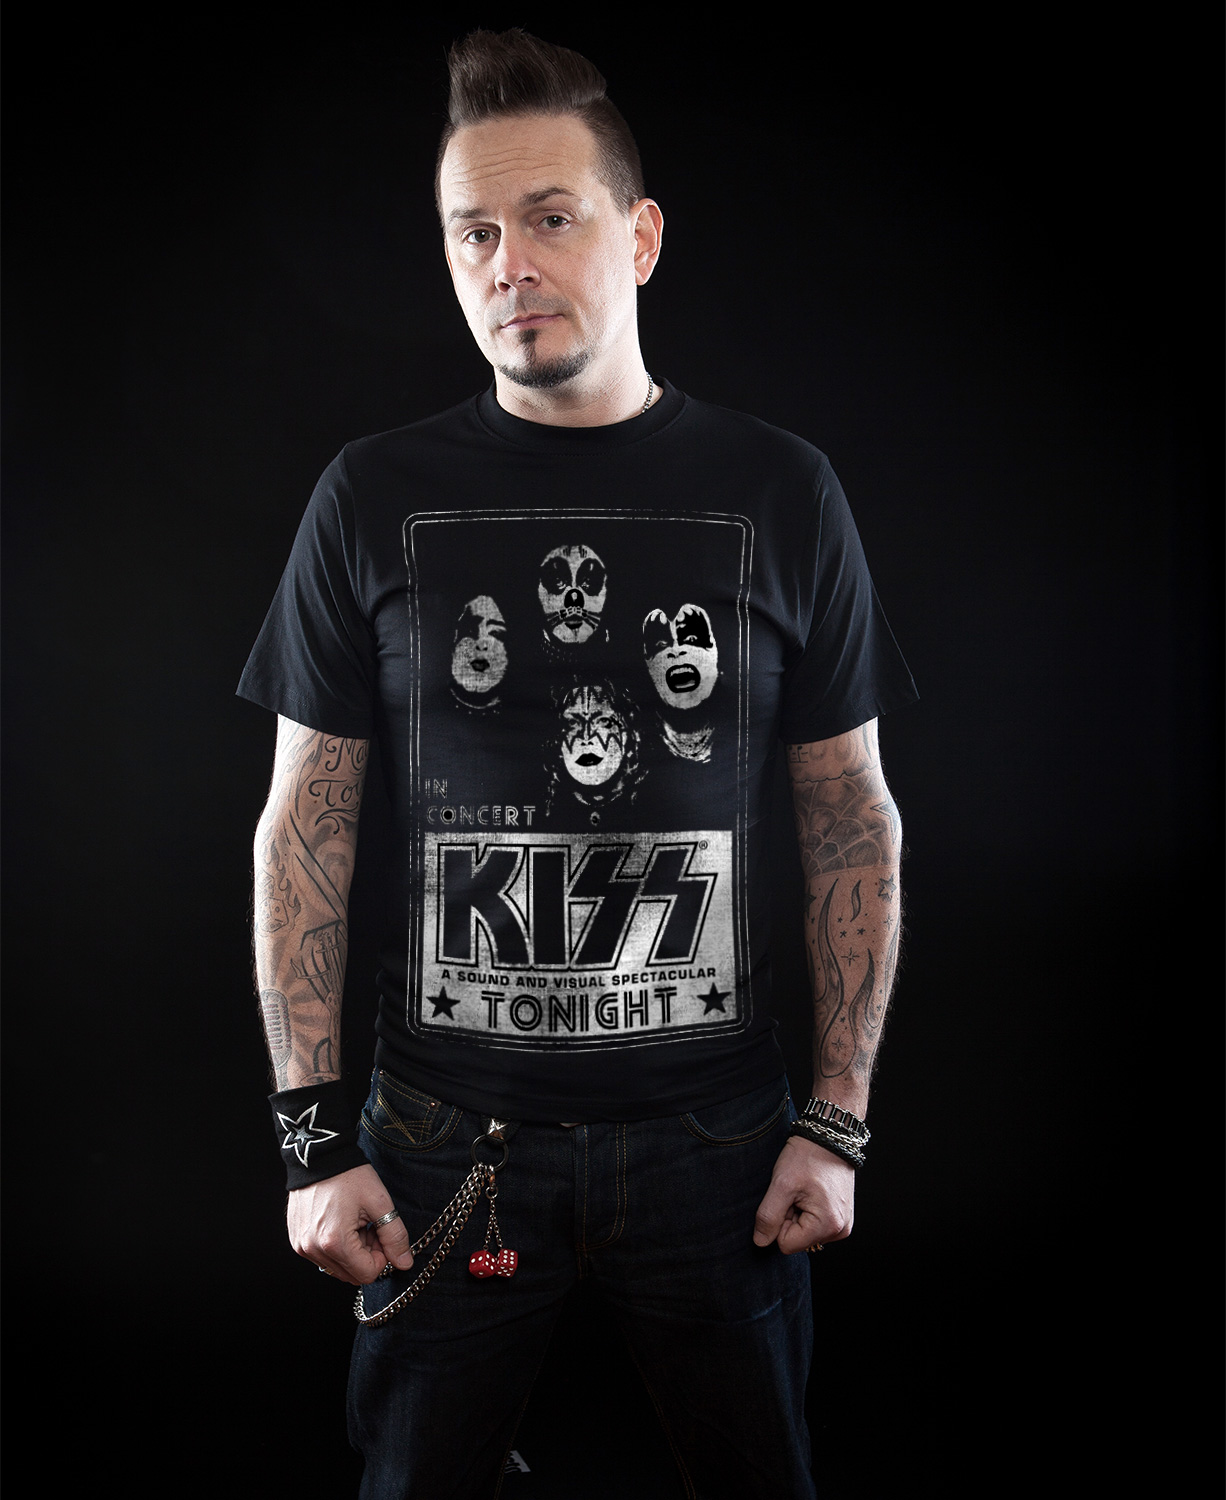 KISS In Concert Distressed Poster T-Shirt - black